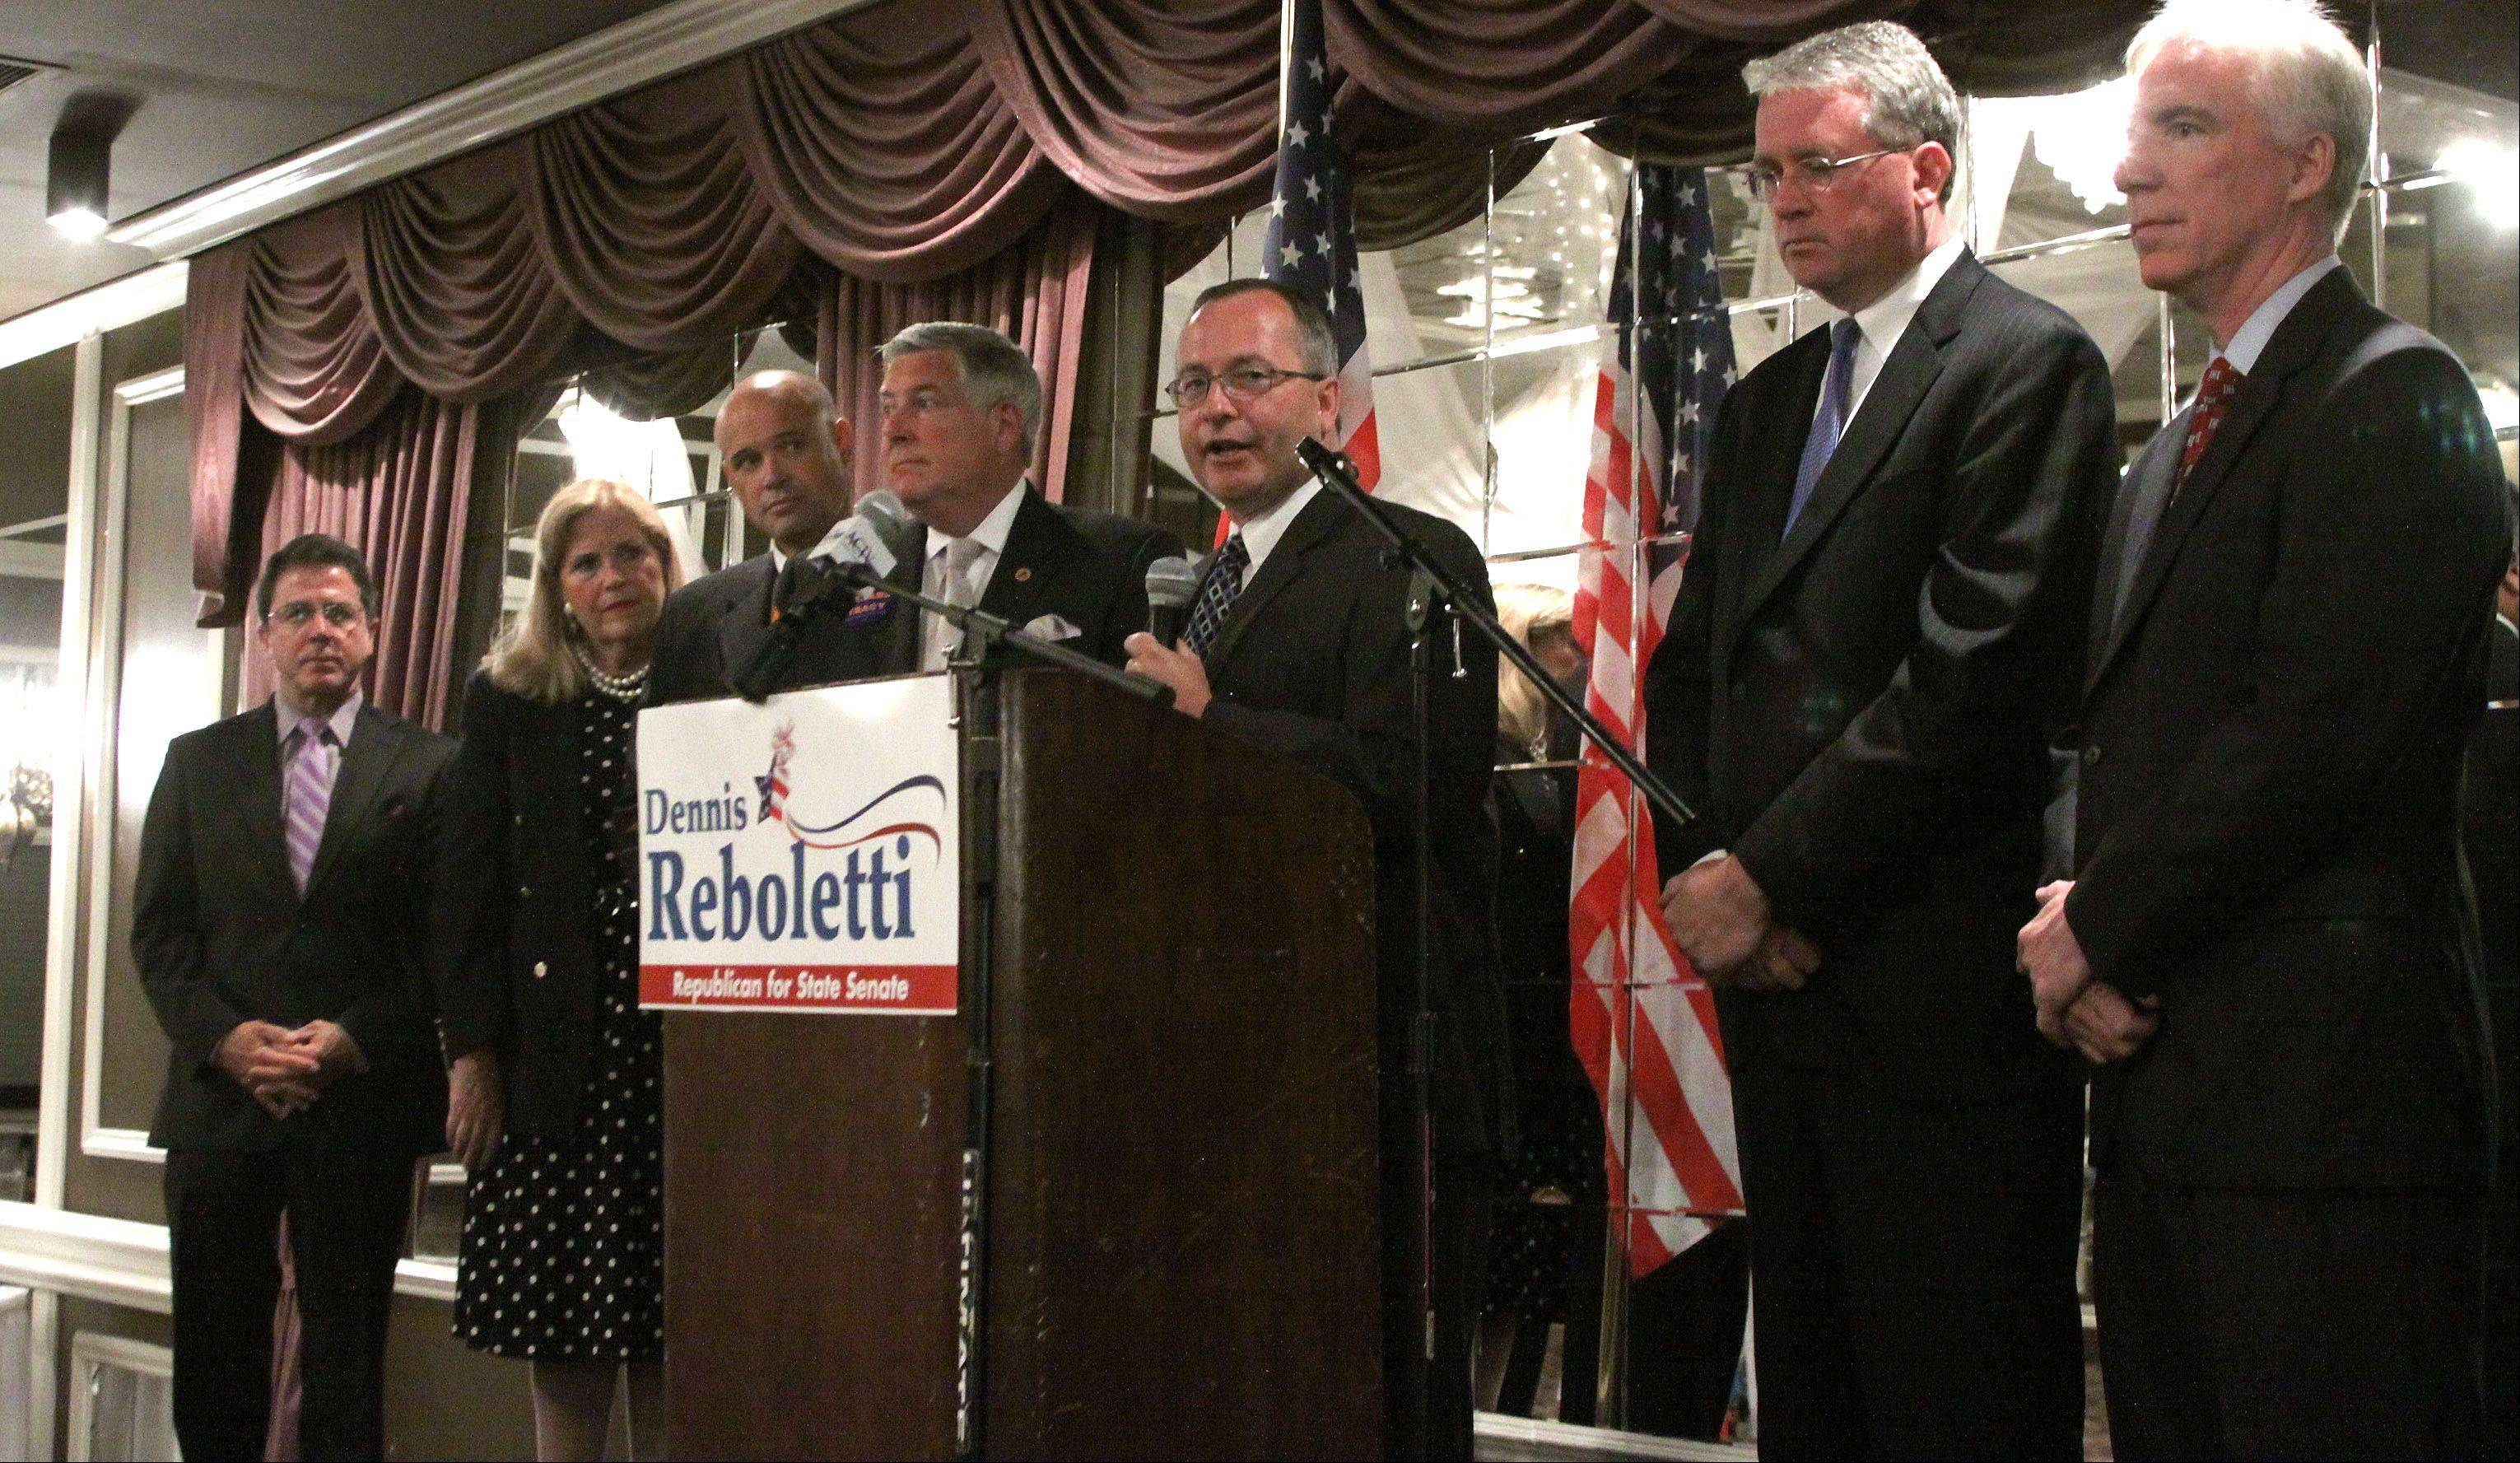 State Rep. Dennis Reboletti of Elmhurst, center, announced Wednesday that he's seeking an Illinois Senate seat.